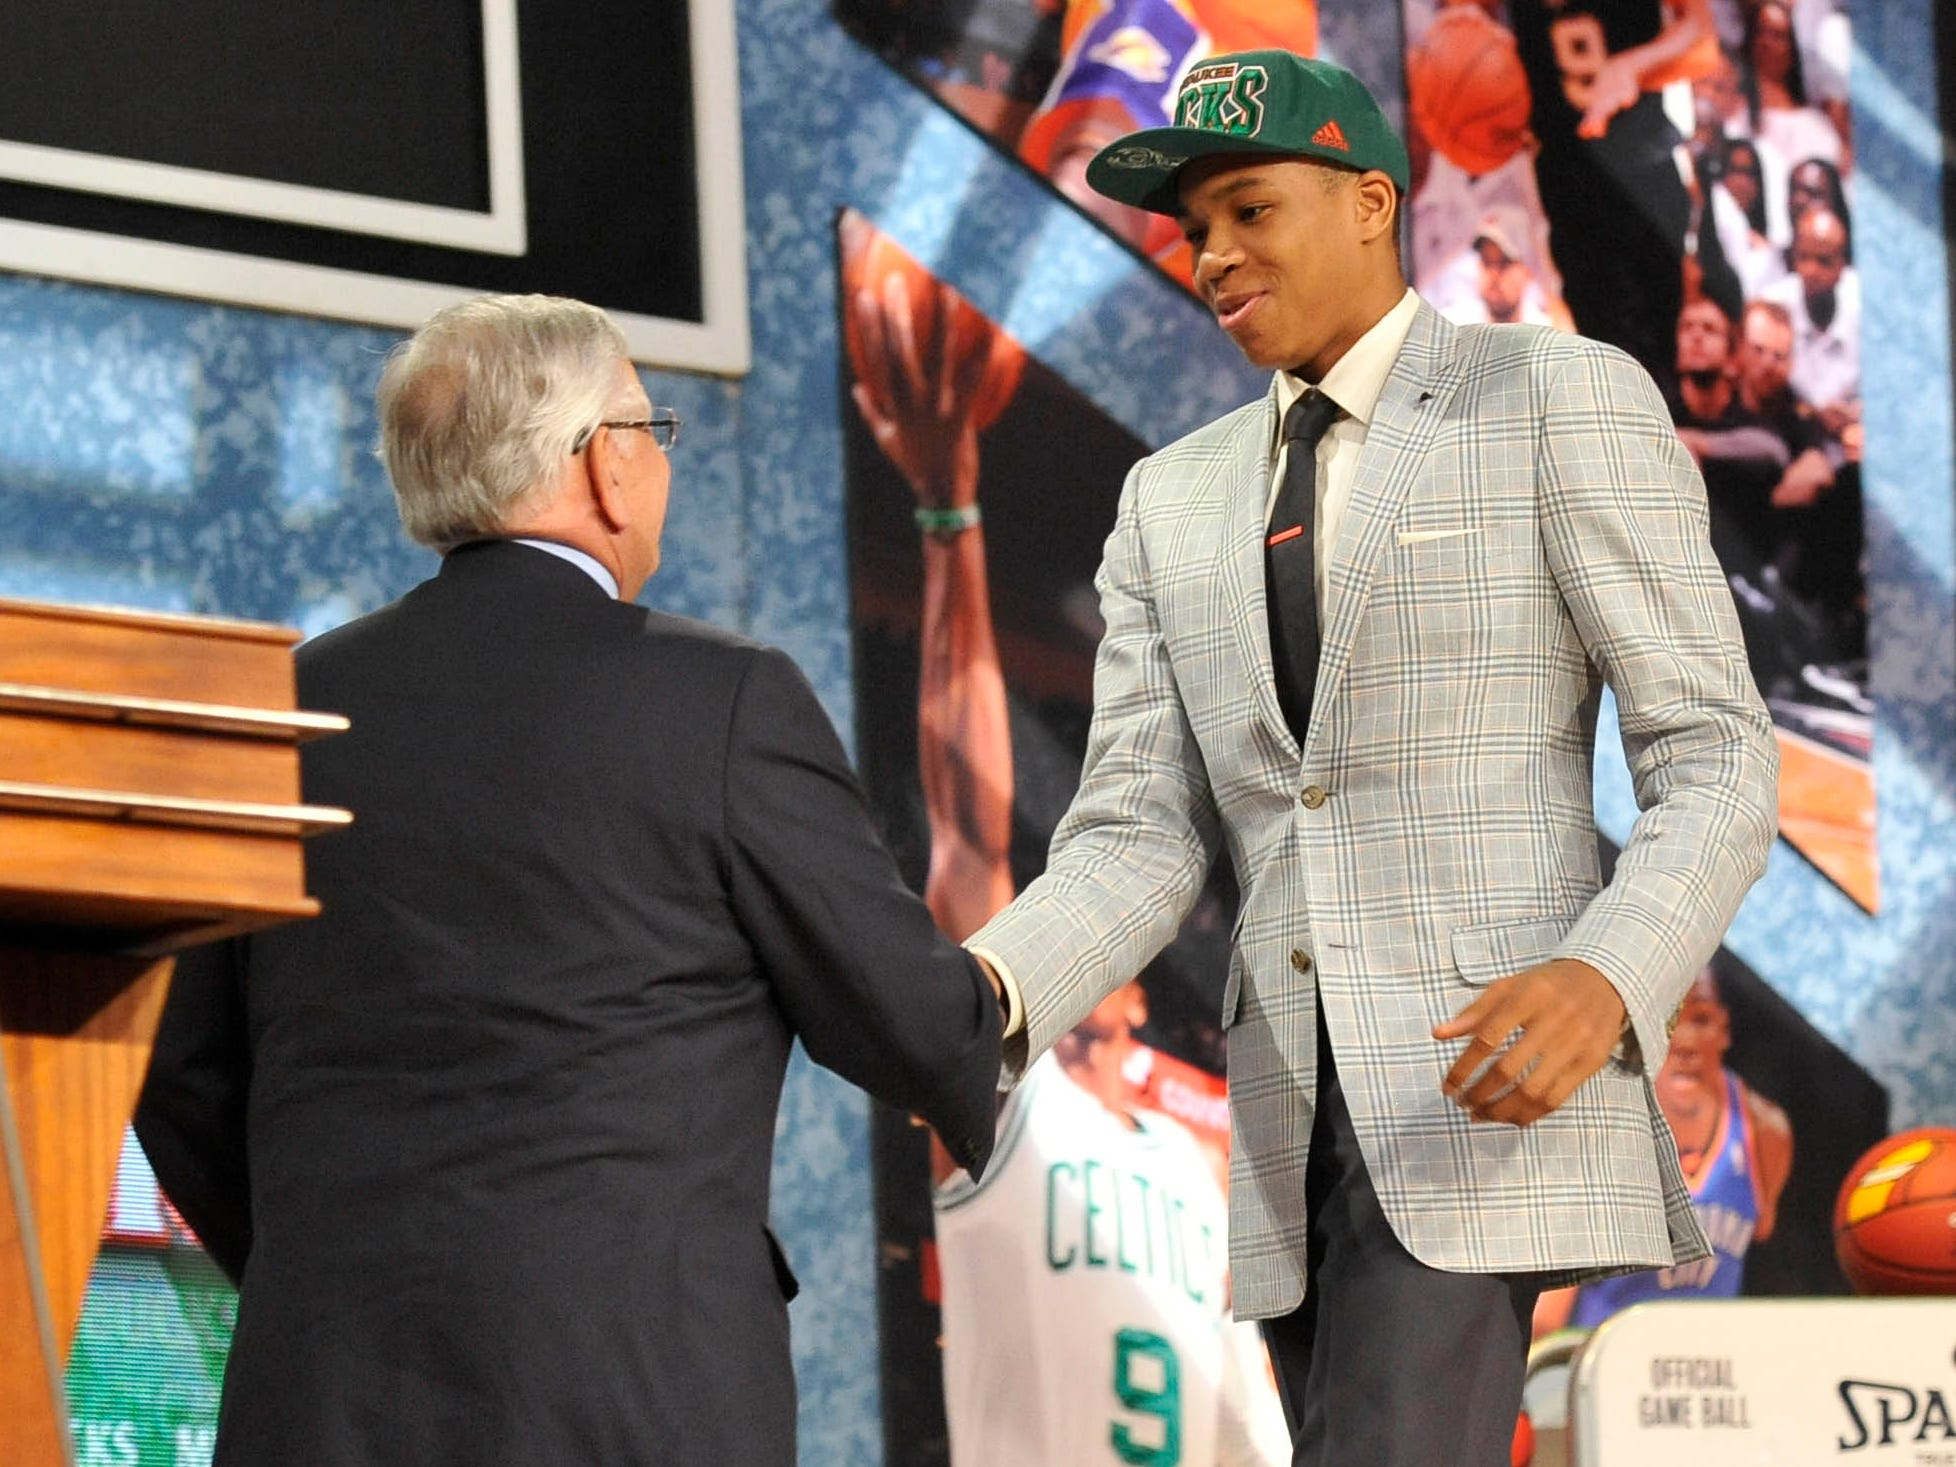 Antetokounmpo greets former NBA commissoiner David Stern on stage after being drafted by Milwaukee.